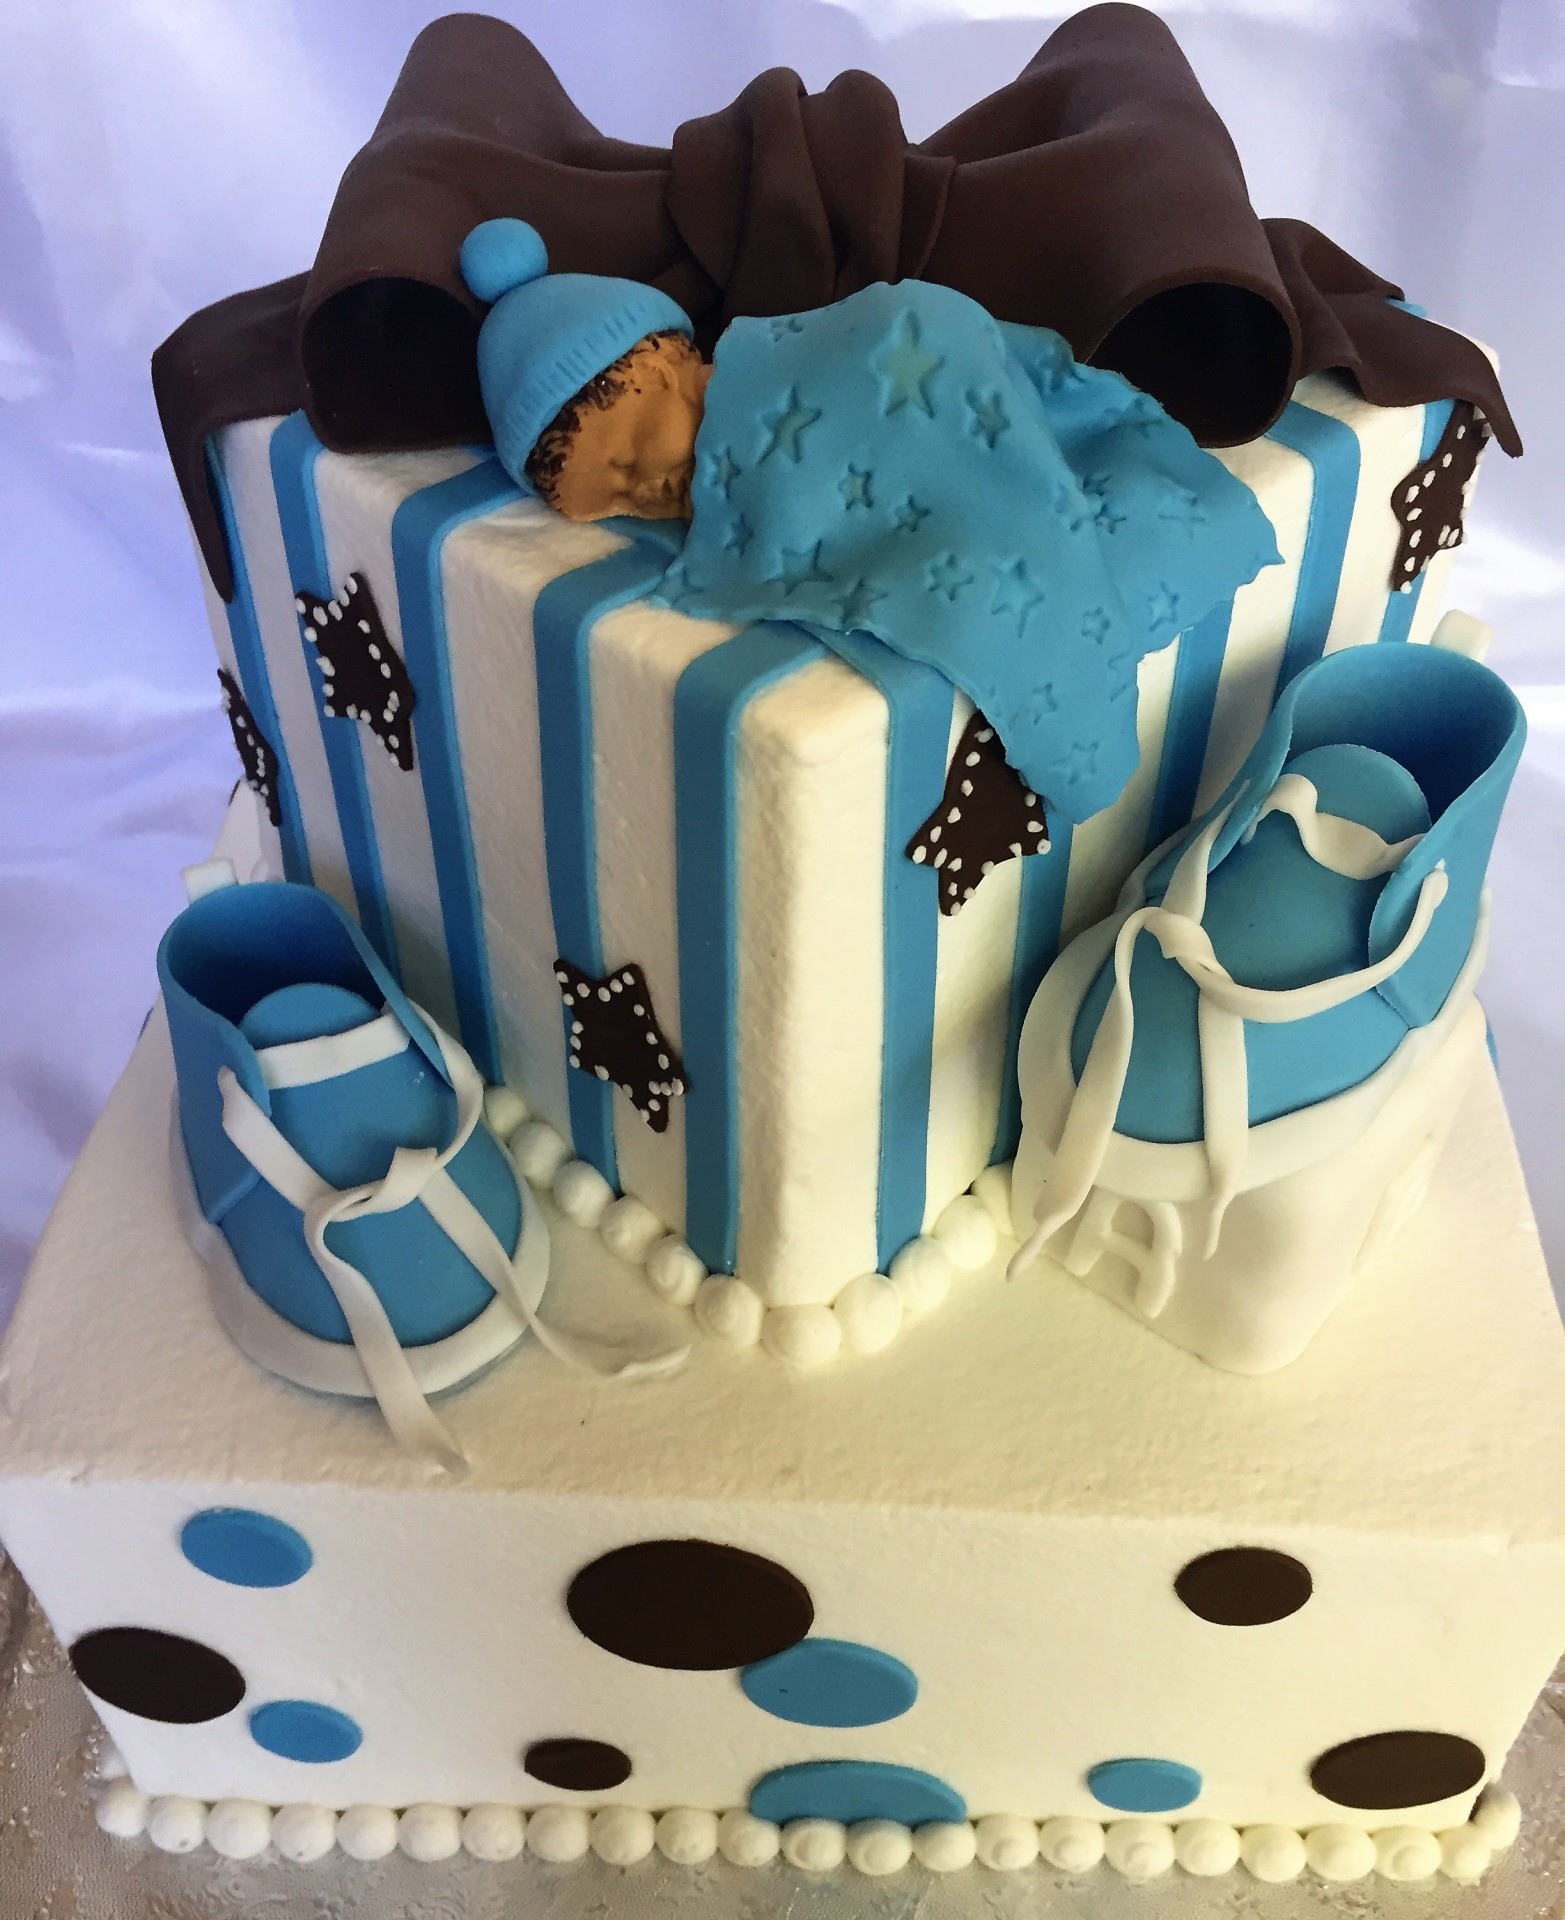 Square tiered cake with shoes,baby,bow and block